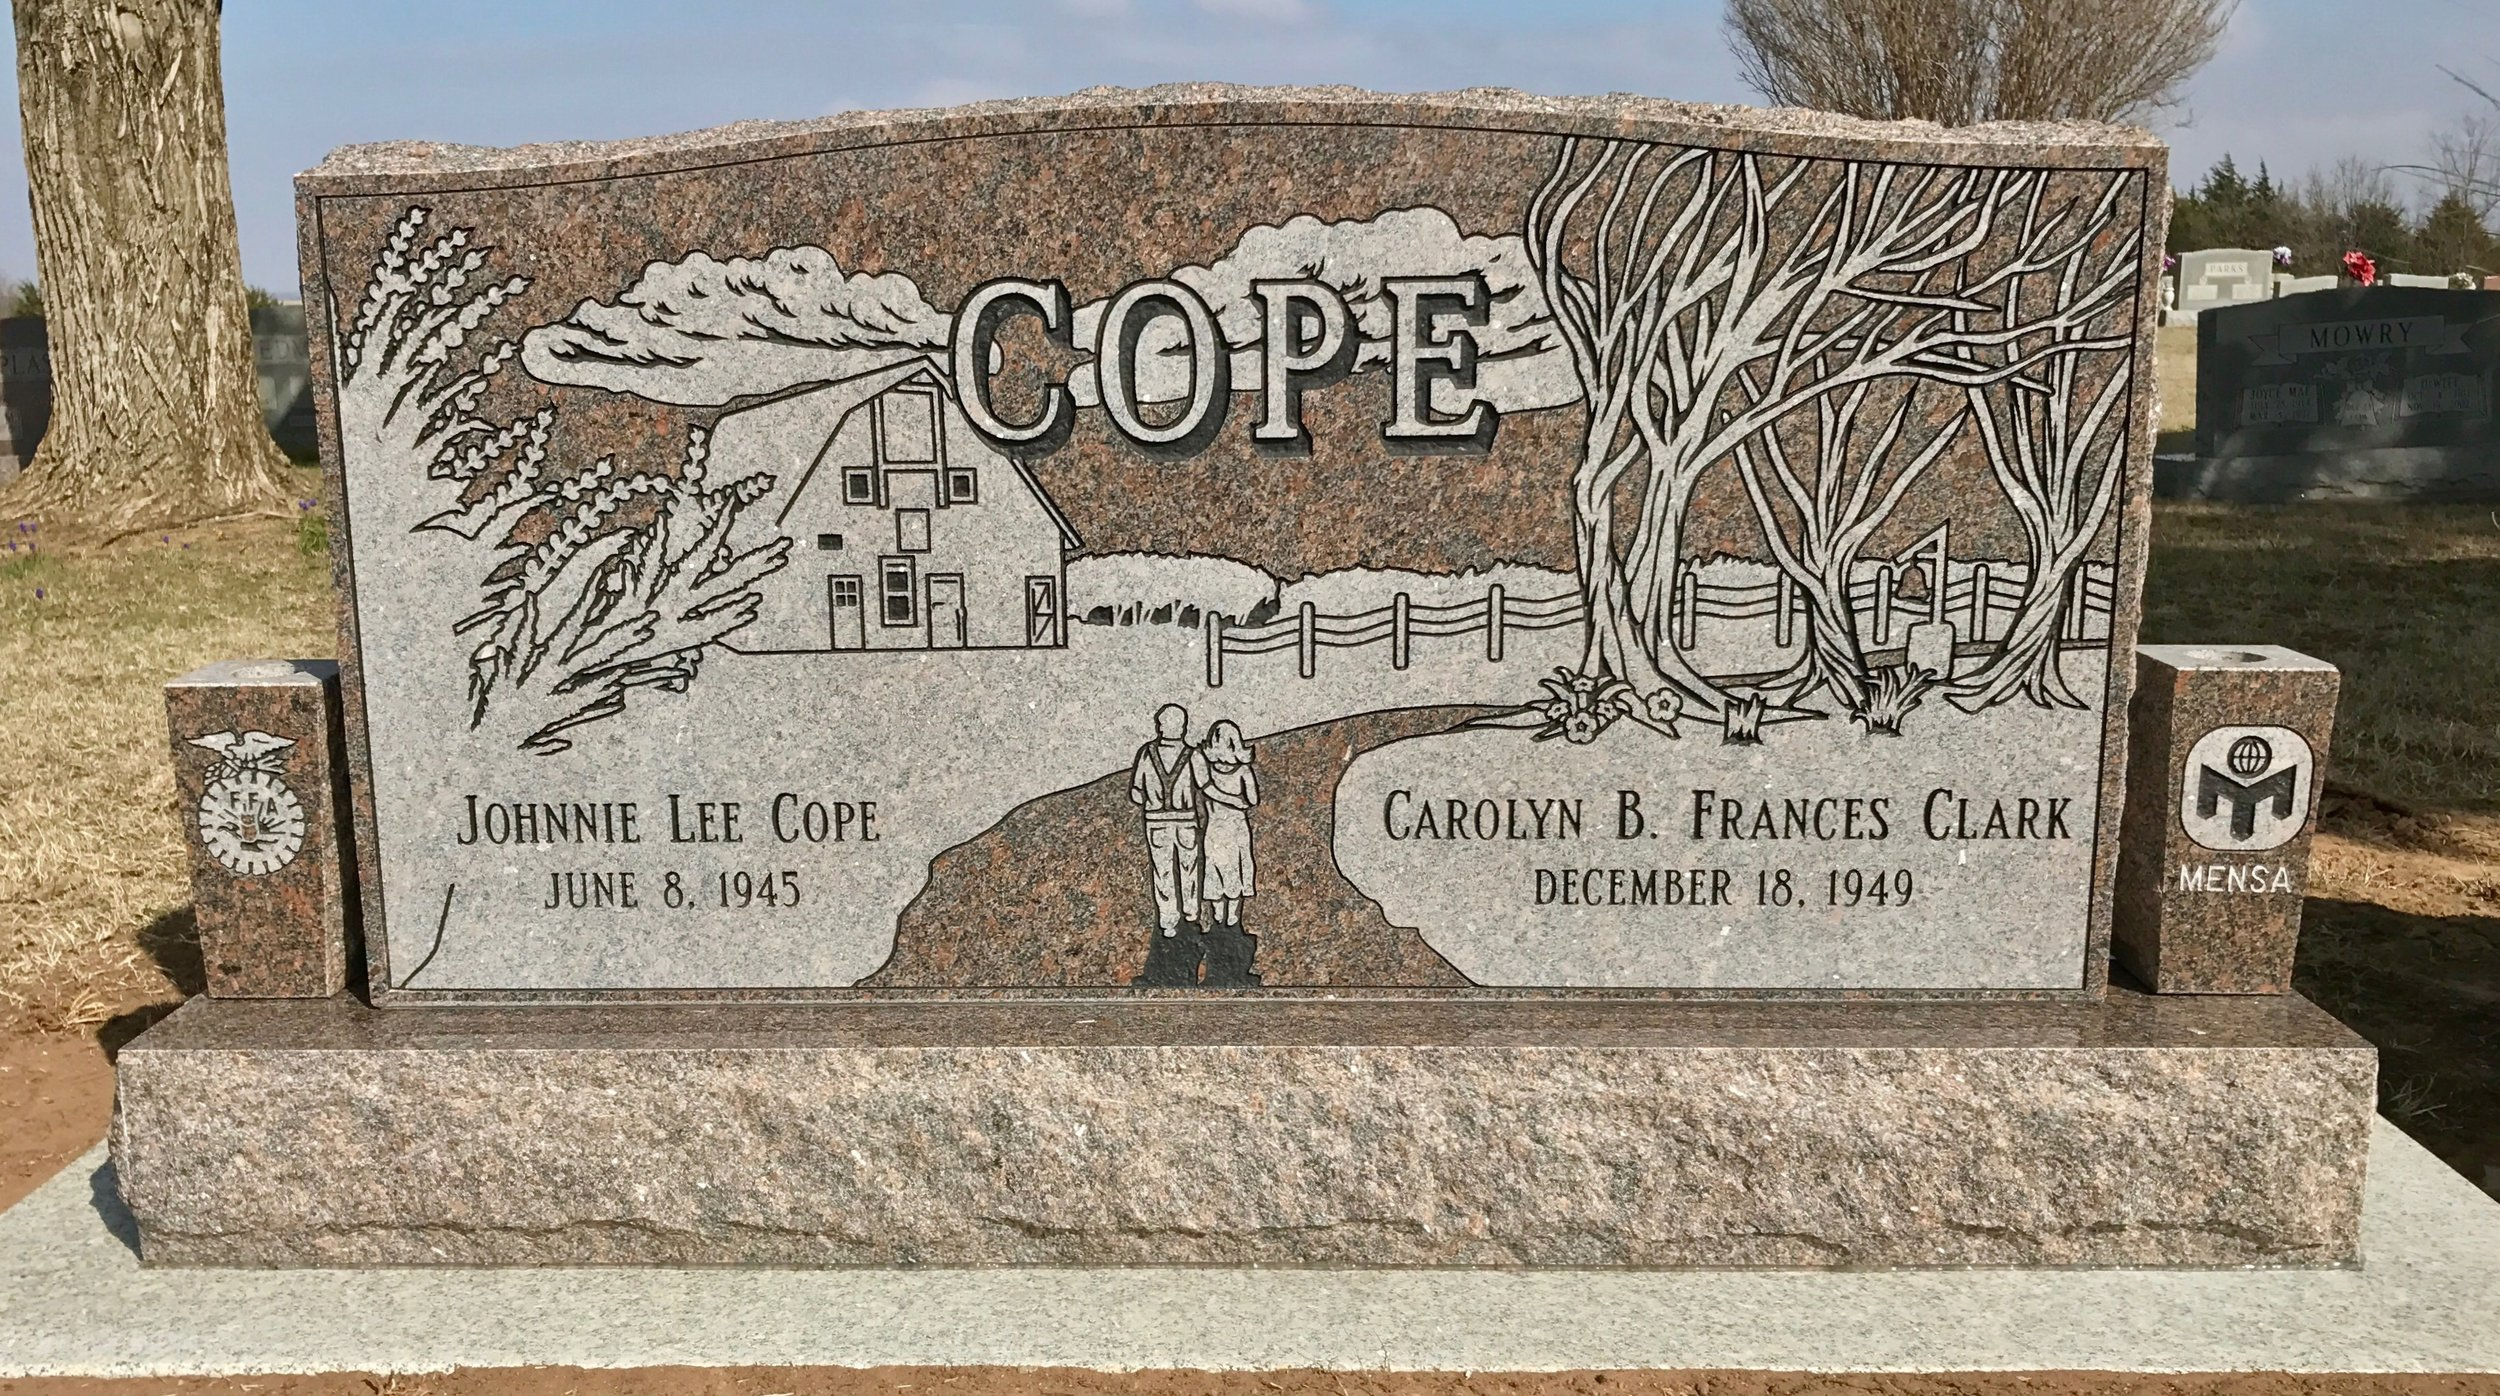 Cope - New Hope.jpg